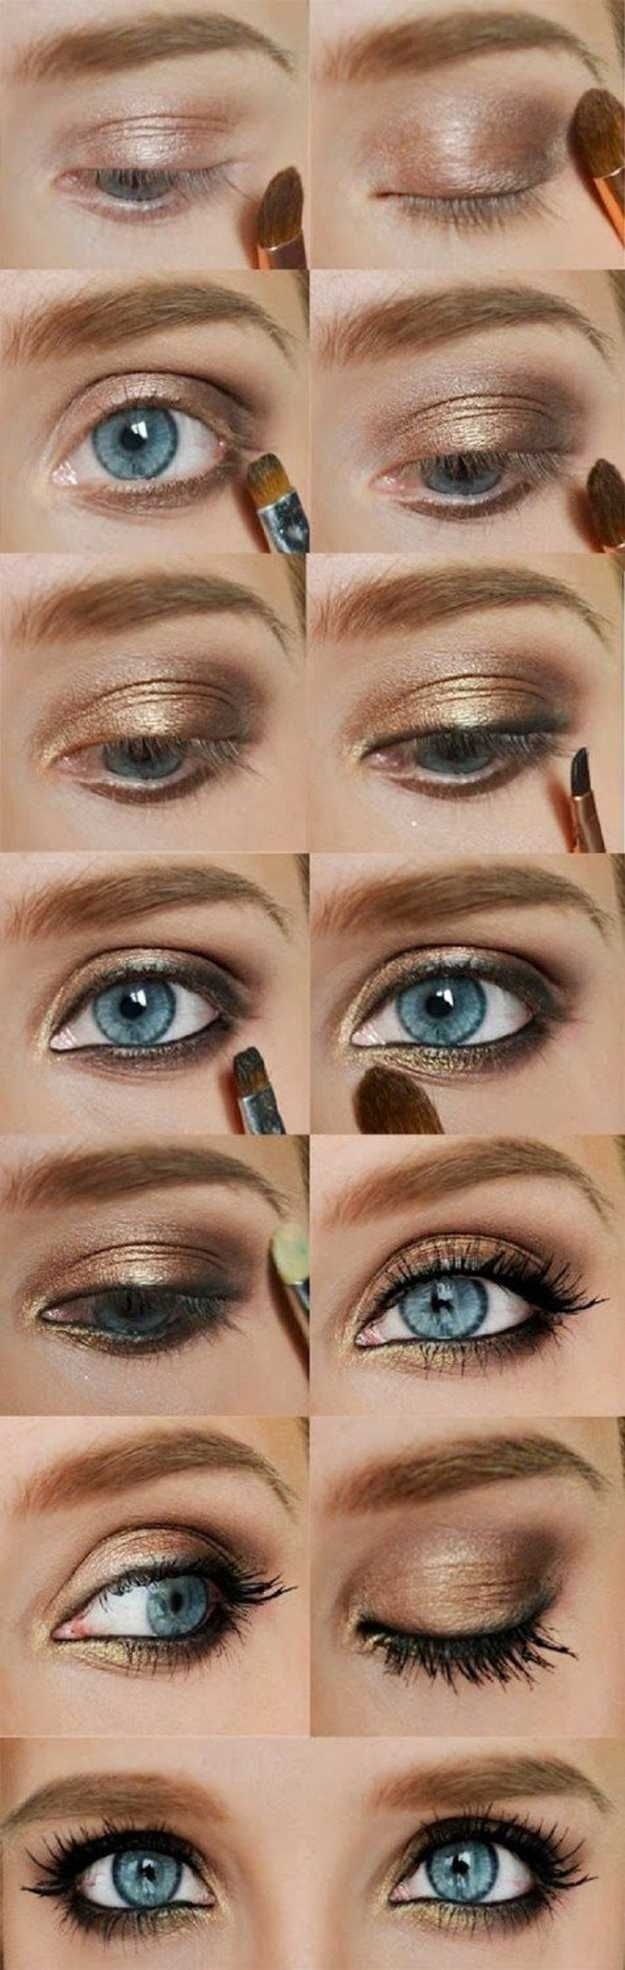 how to apply gold eyeshadow for blue eyes - wavy haircut